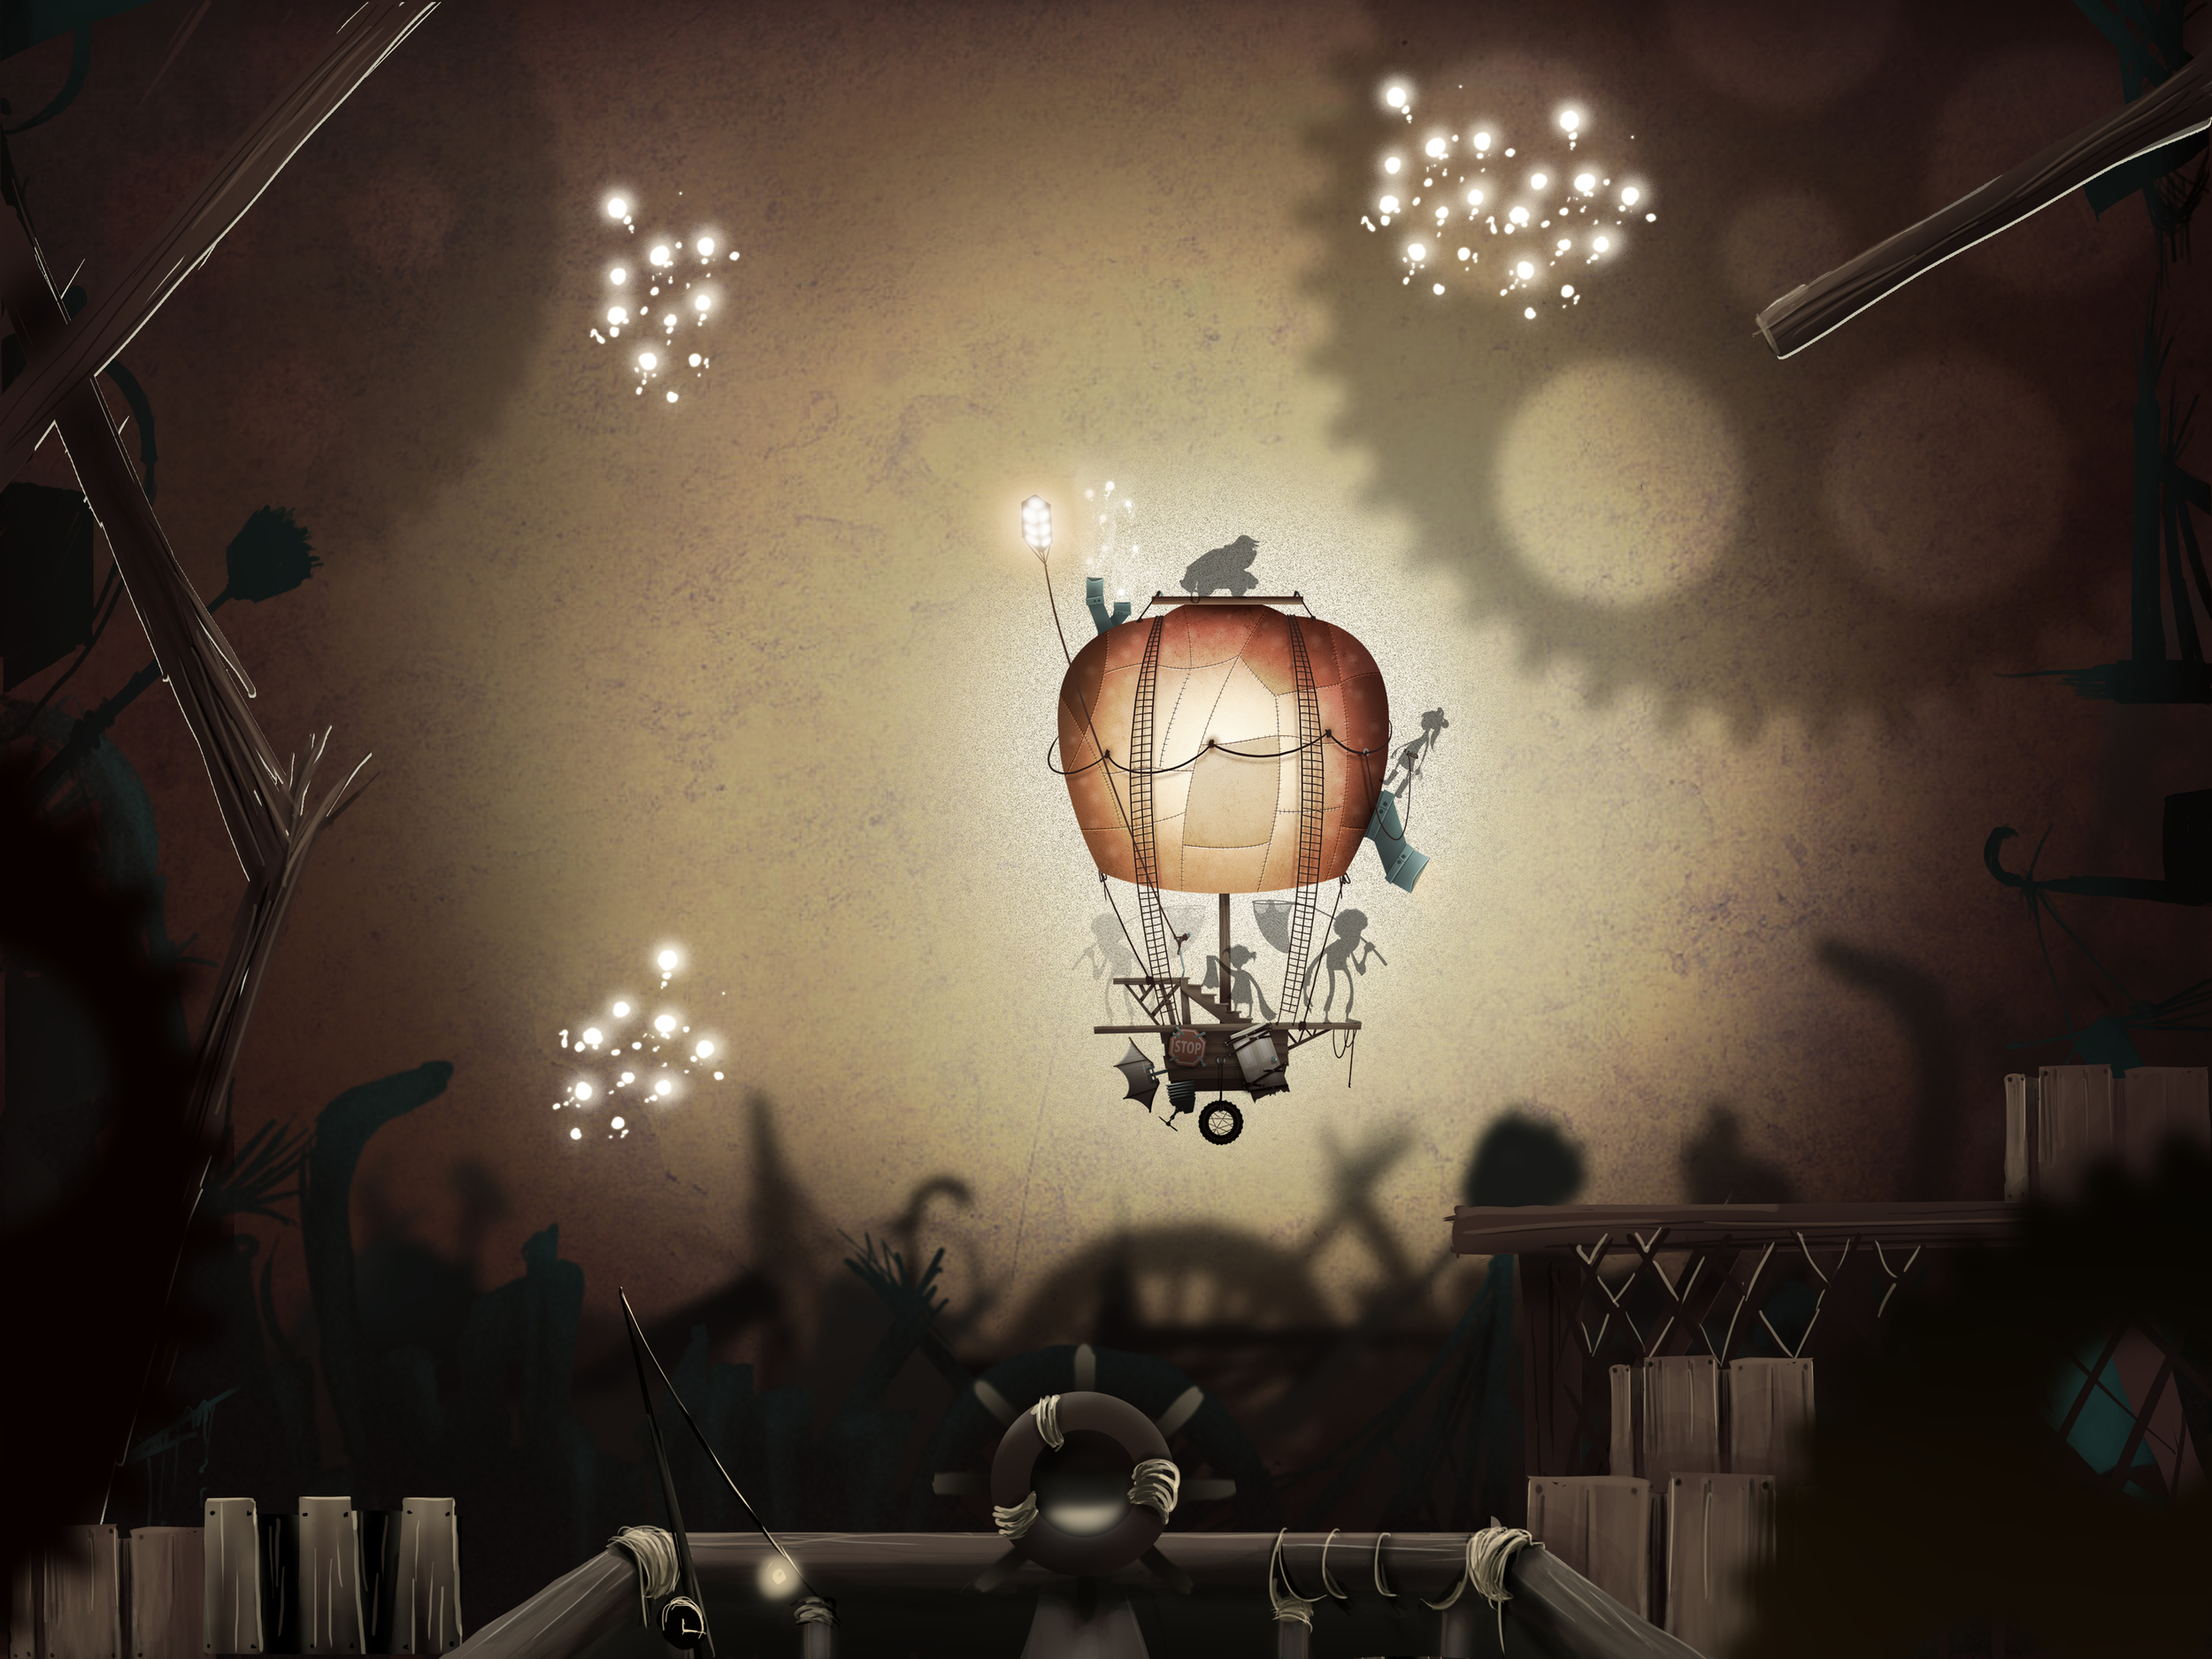 Fireflies and balloon drawn by another artist.